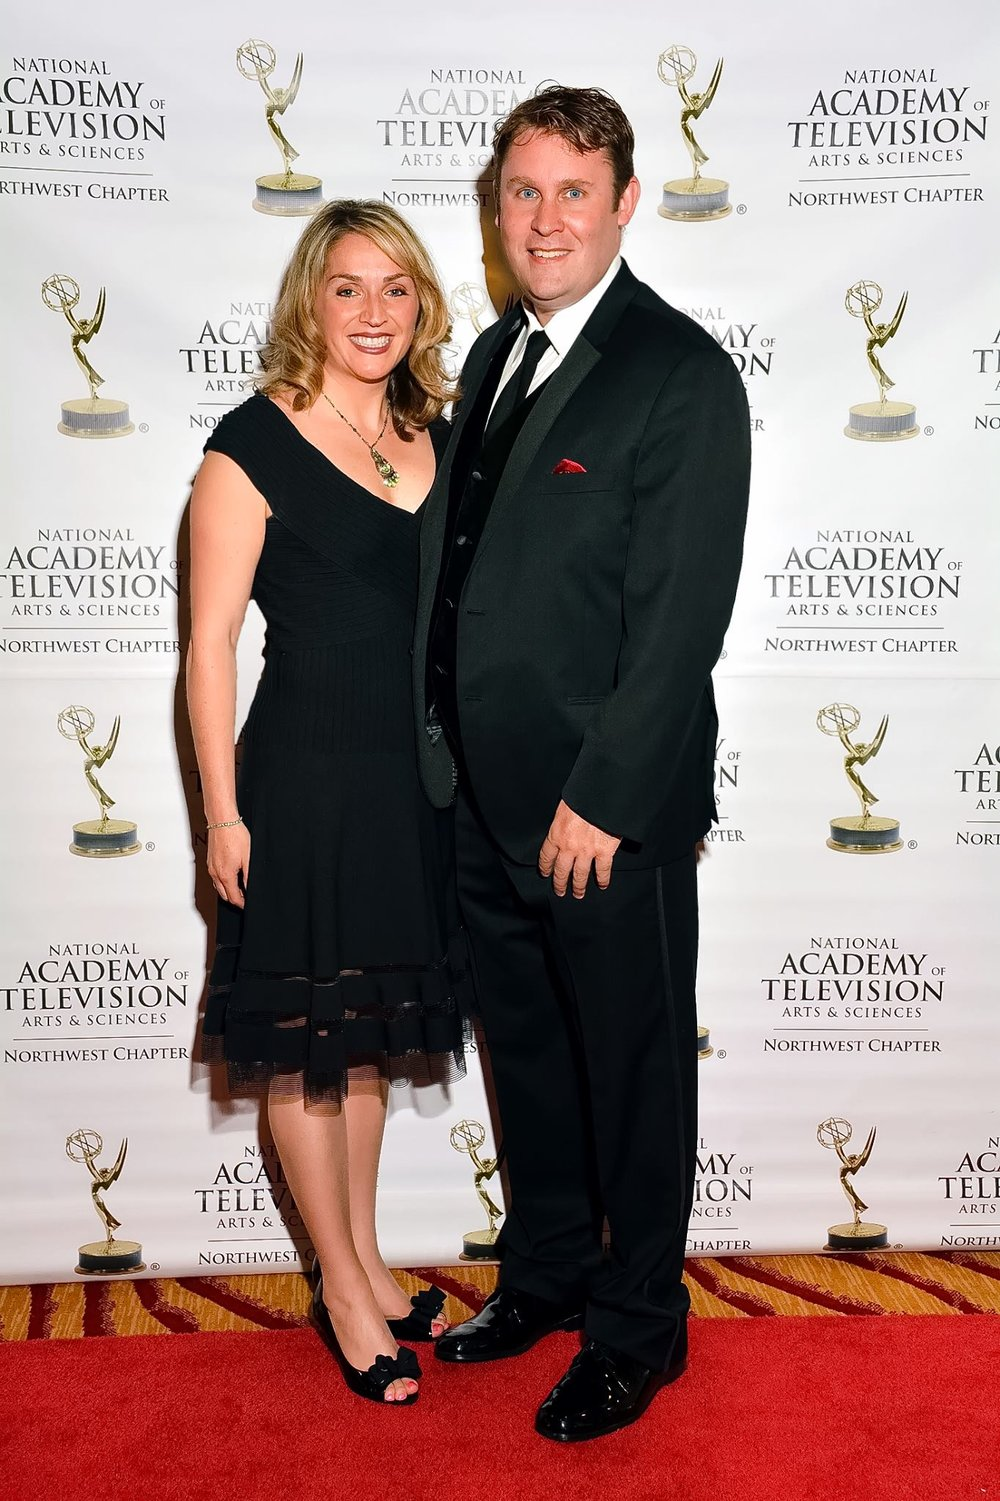 Laura and Clay Butcher on the red carpet at the 2013 Northwest Emmy awards in Seattle, Washington.